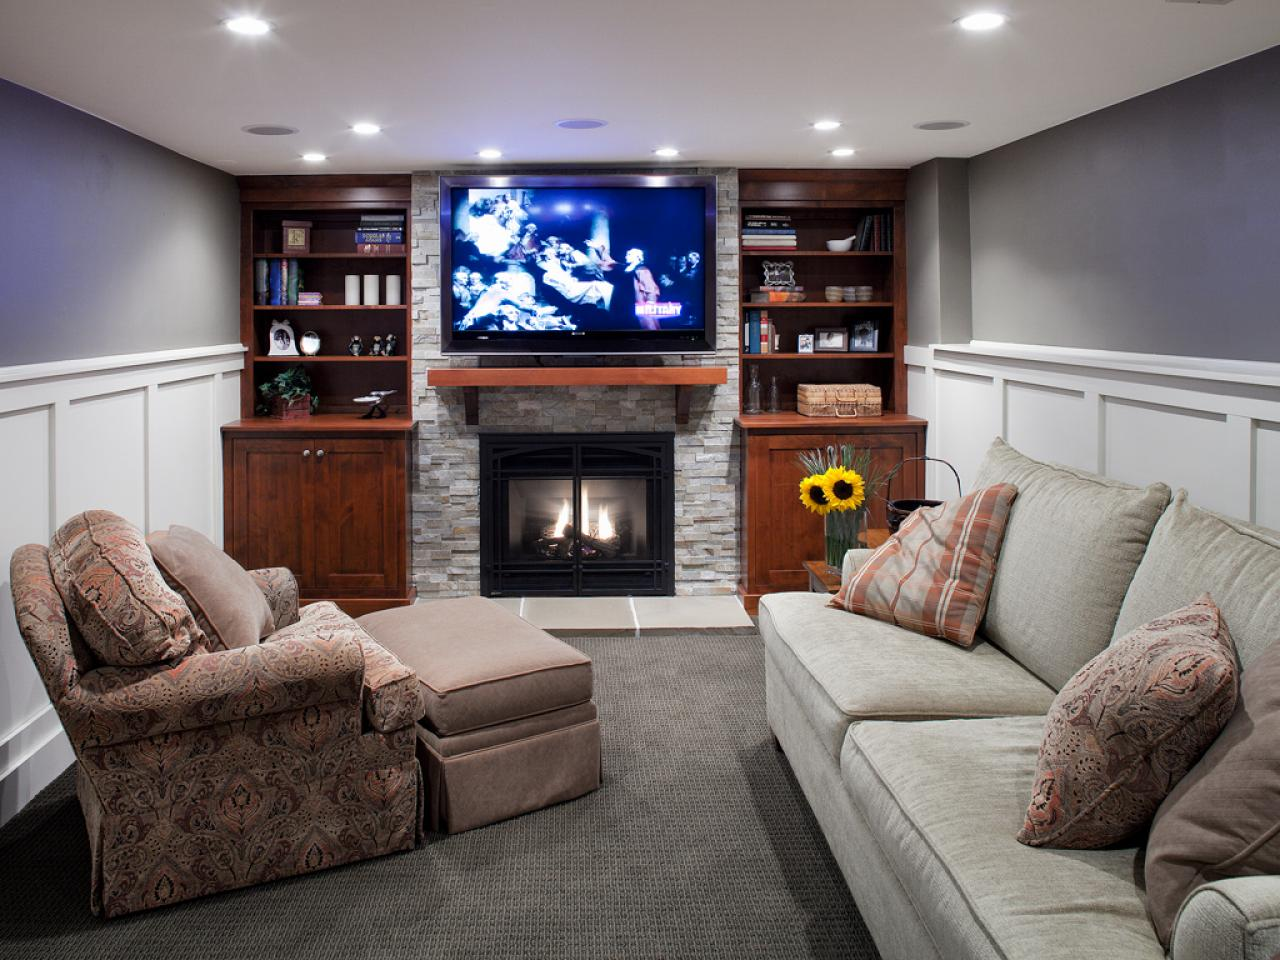 Heating your basement hgtv Heating options for small homes